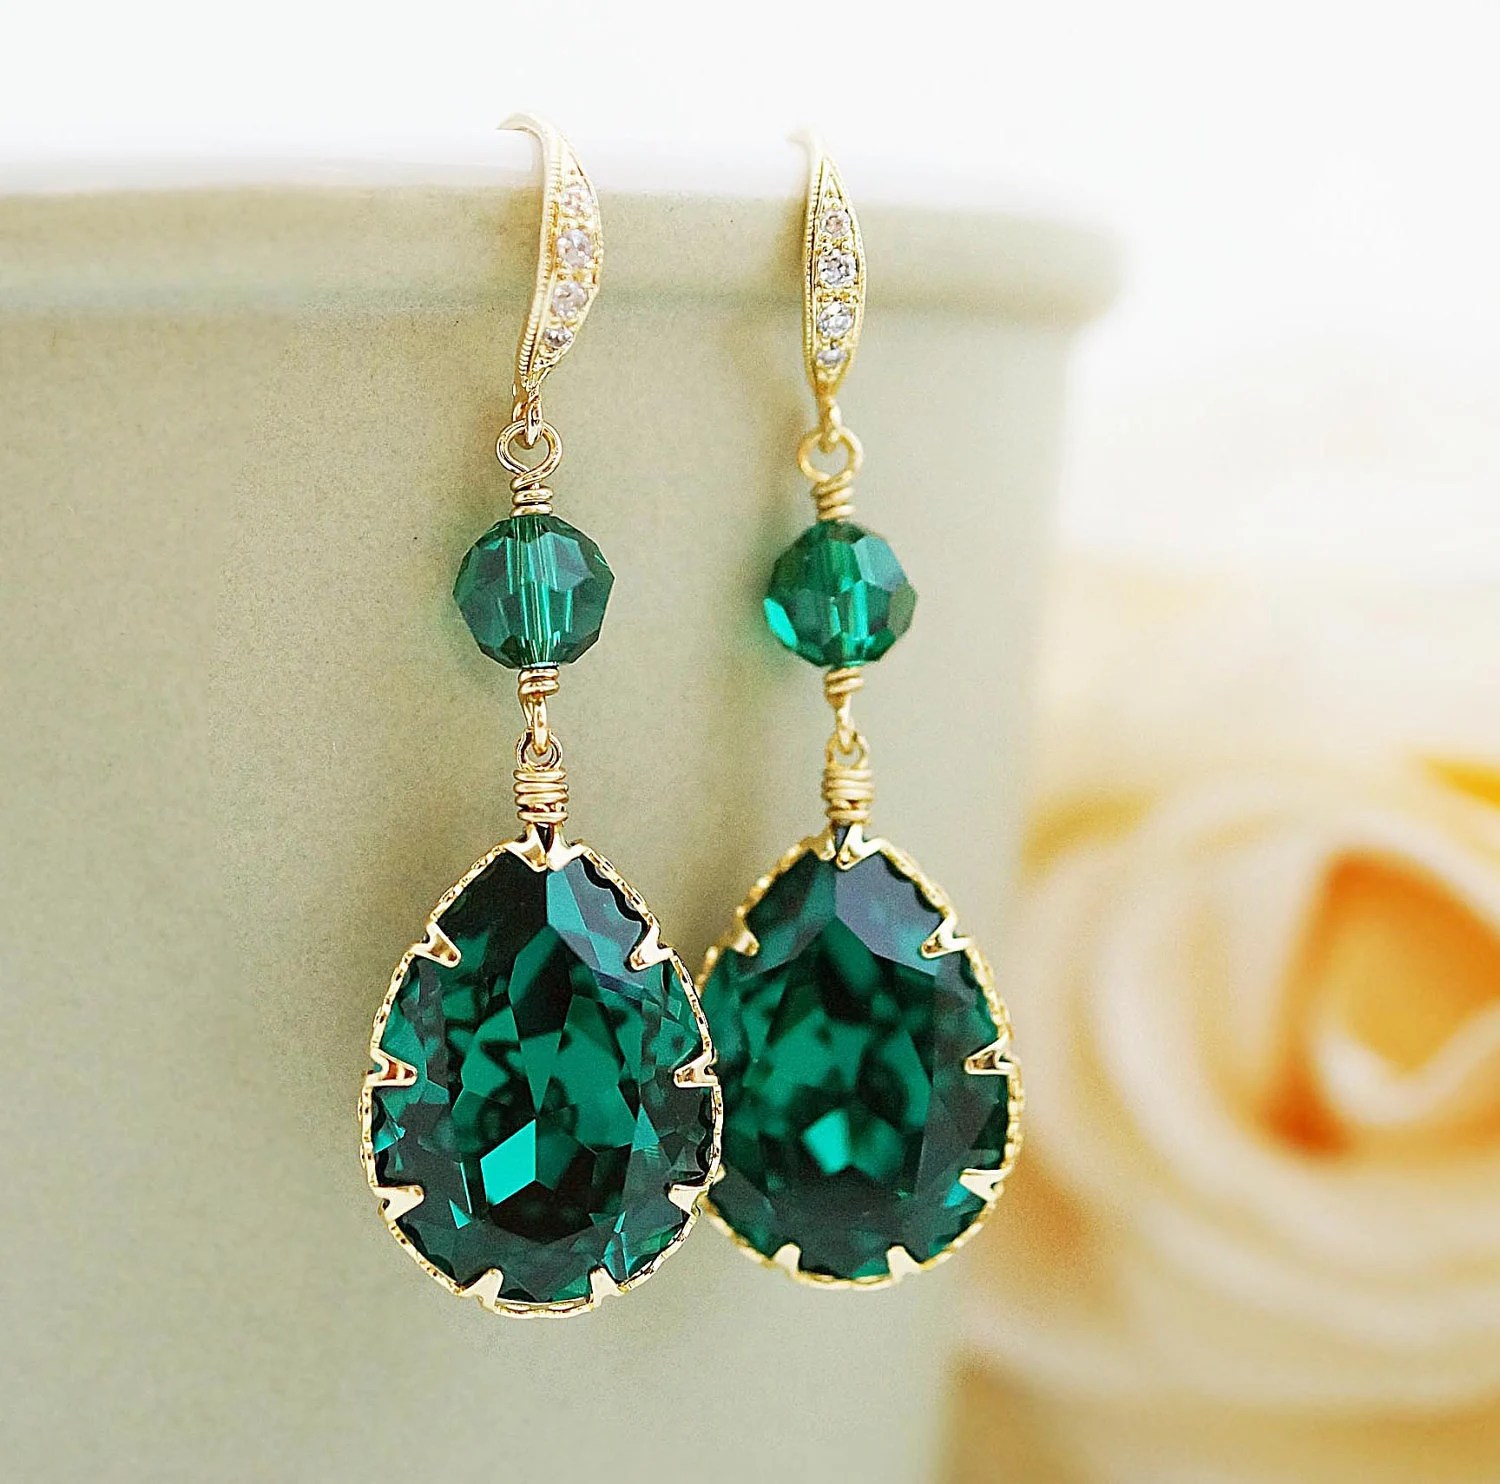 Wedding Bridal Jewelry Bridal Earrings Bridesmaid Earrings Cubic zirconia earrings with Emerald  Swarovski Crystal Earrings